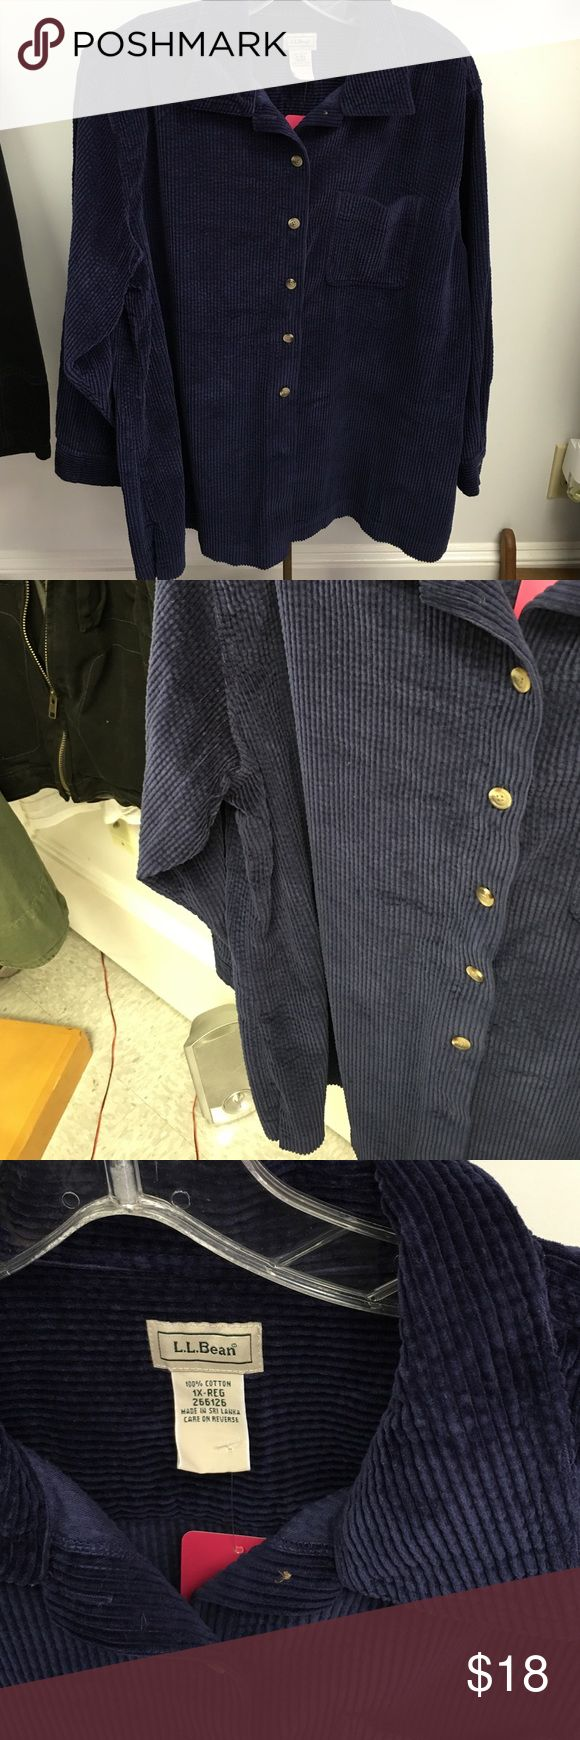 LLBean corduroy collared shirt Sz 1x This comfy shirt is perfect for your fall walks ladies! Corduroy and navy blue. Made by LLBean in a size 1X. LL bean Tops Button Down Shirts